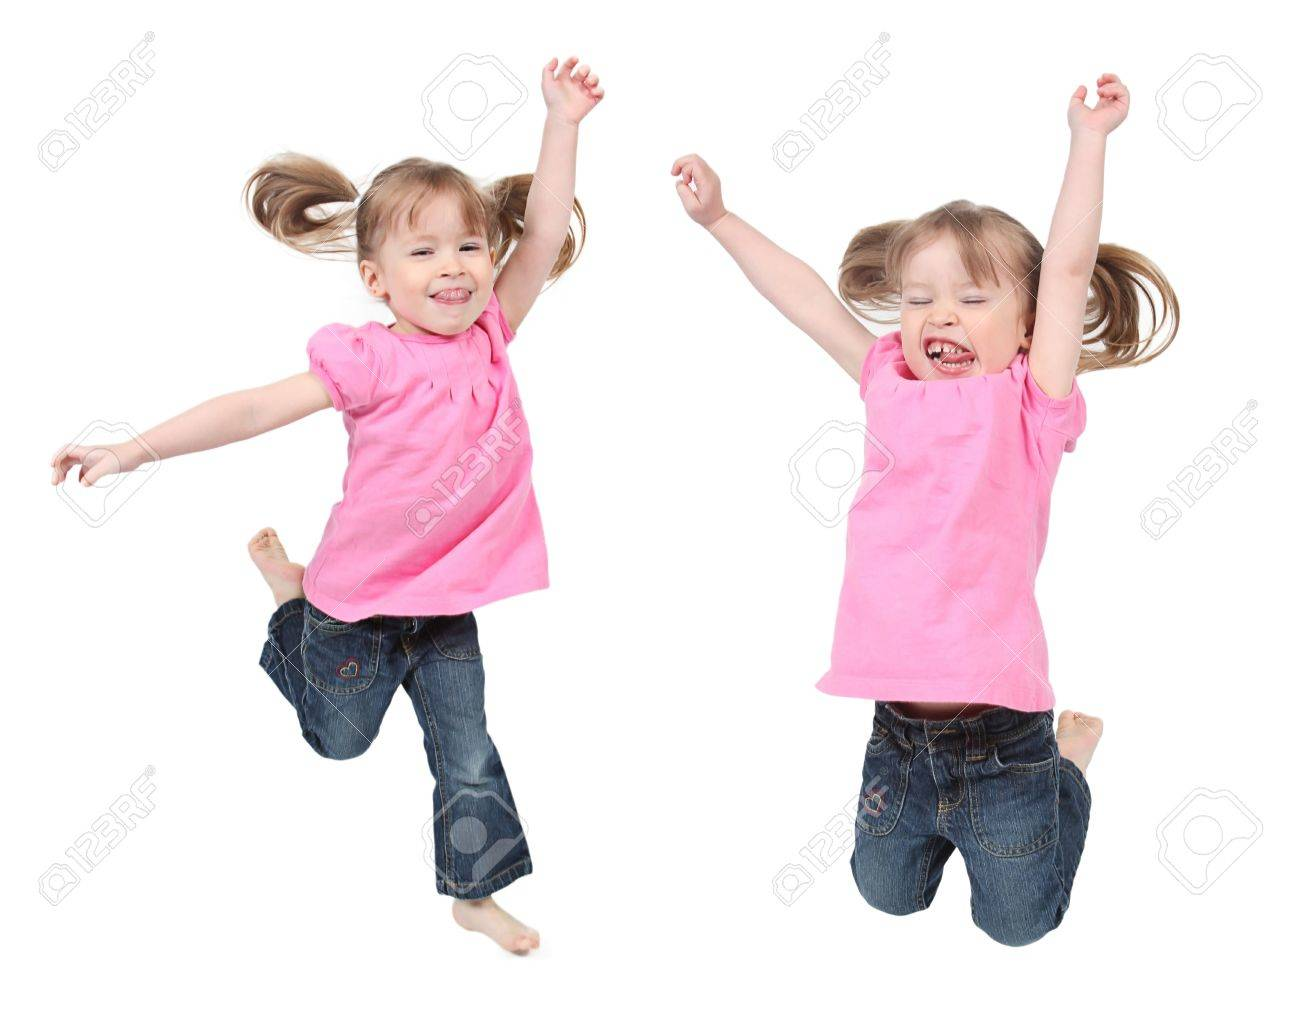 Adorable and happy little girls jumping in air. isolated on white background - 8810191